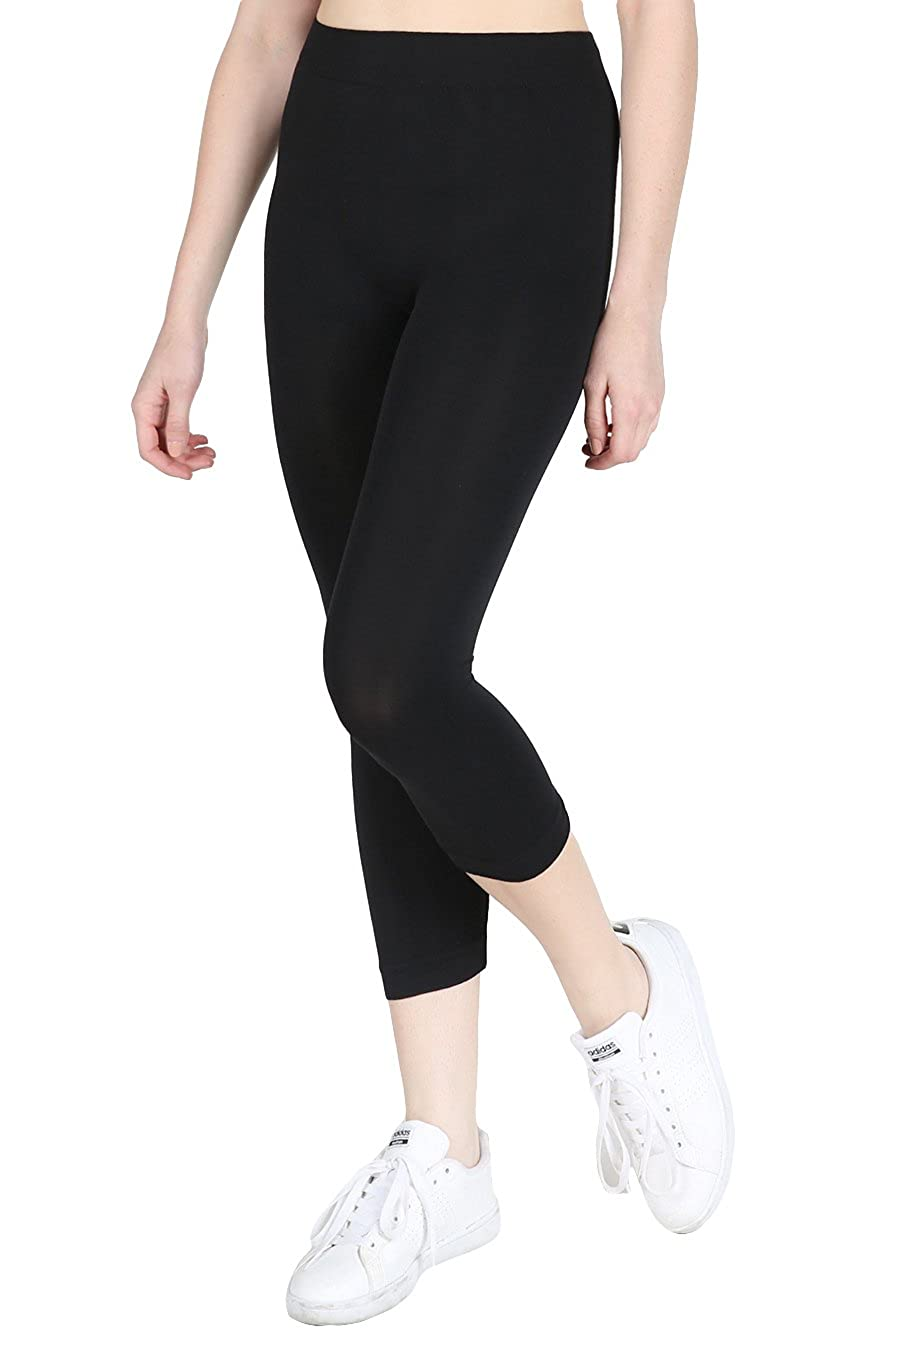 f85df1b263aa7 Nikibiki Women's Seamless Basic Capri Legging Tights, Made in U.S.A, One  Size